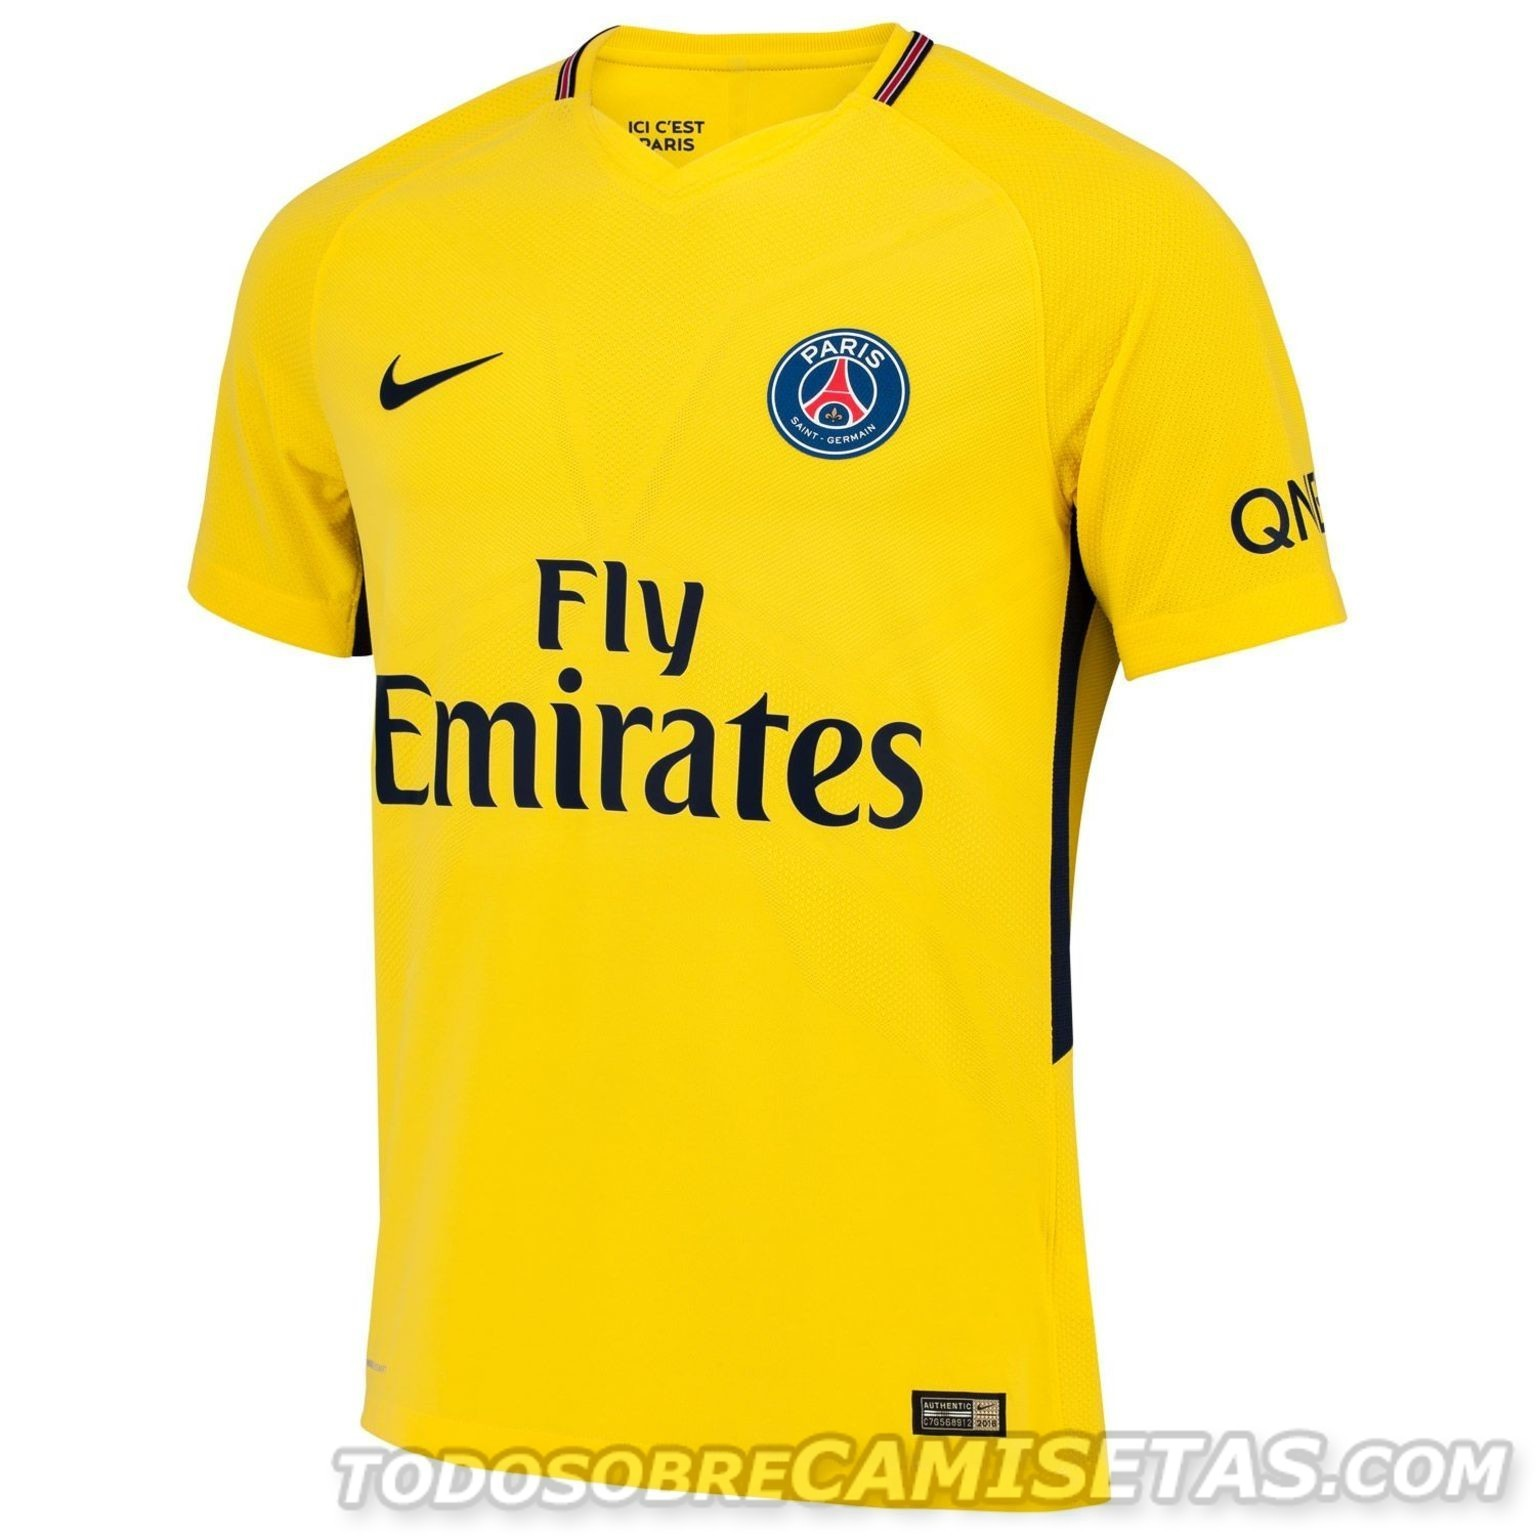 PSG-2017-18-new-away-kit-9.jpg